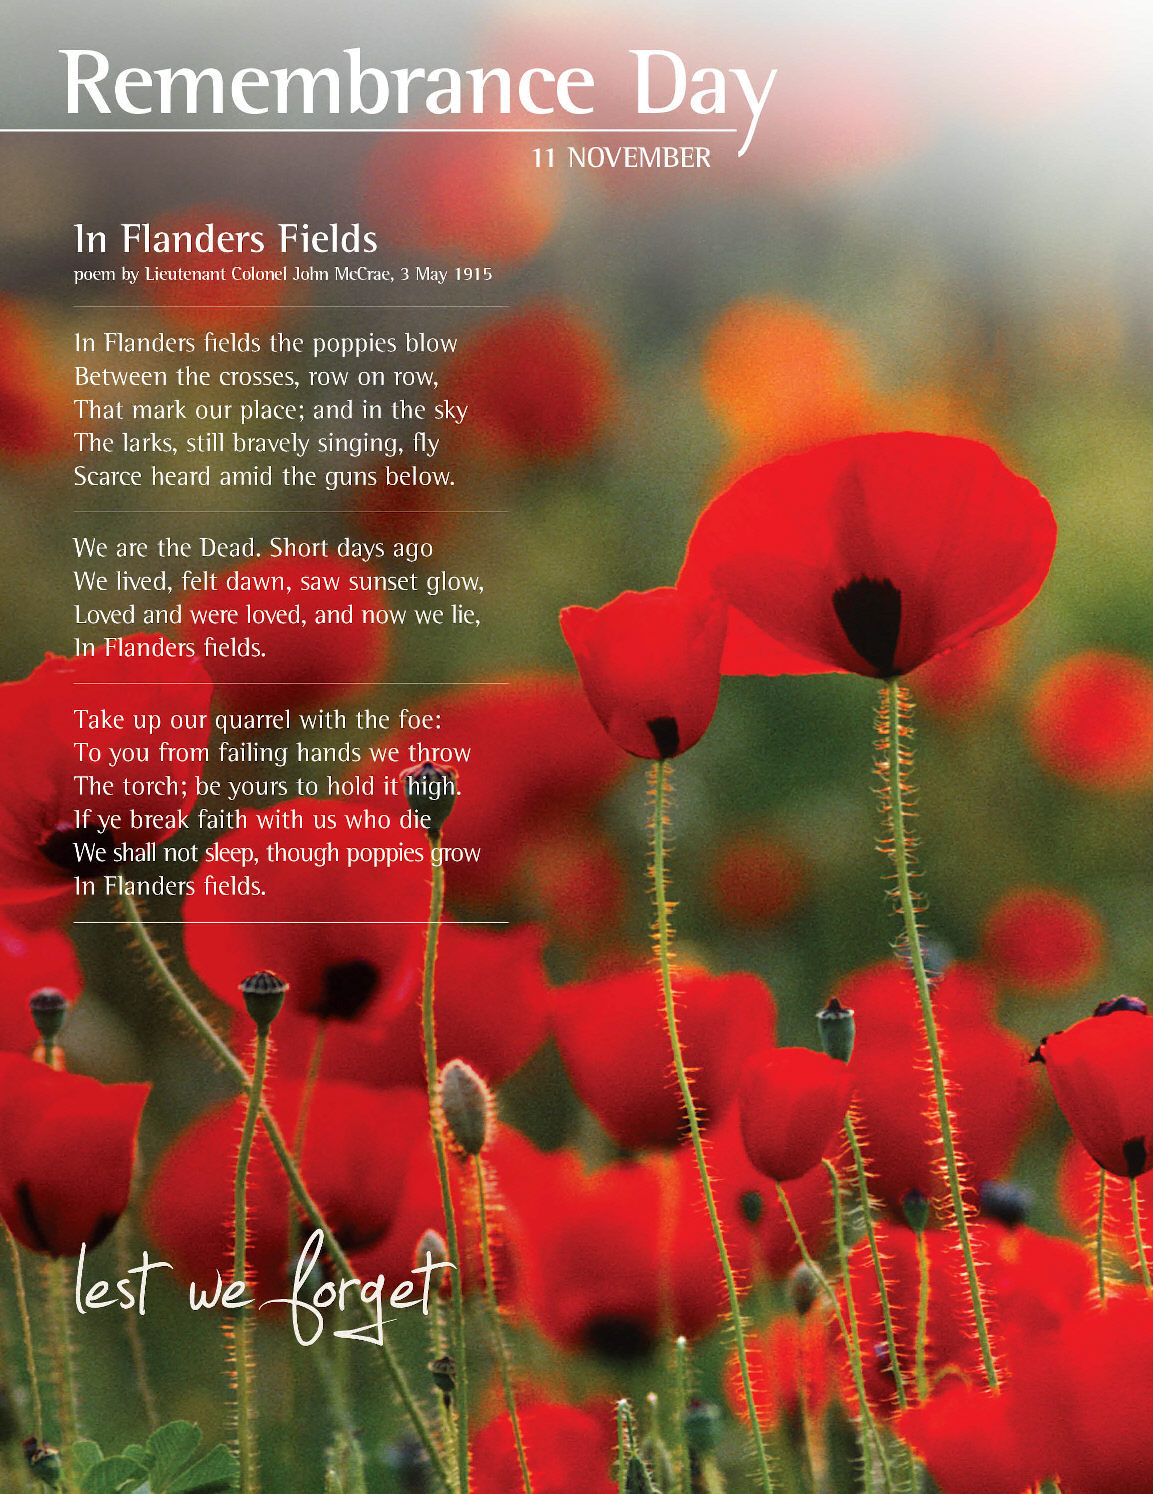 Memorial day poems veterans poems prayers - Inspiring